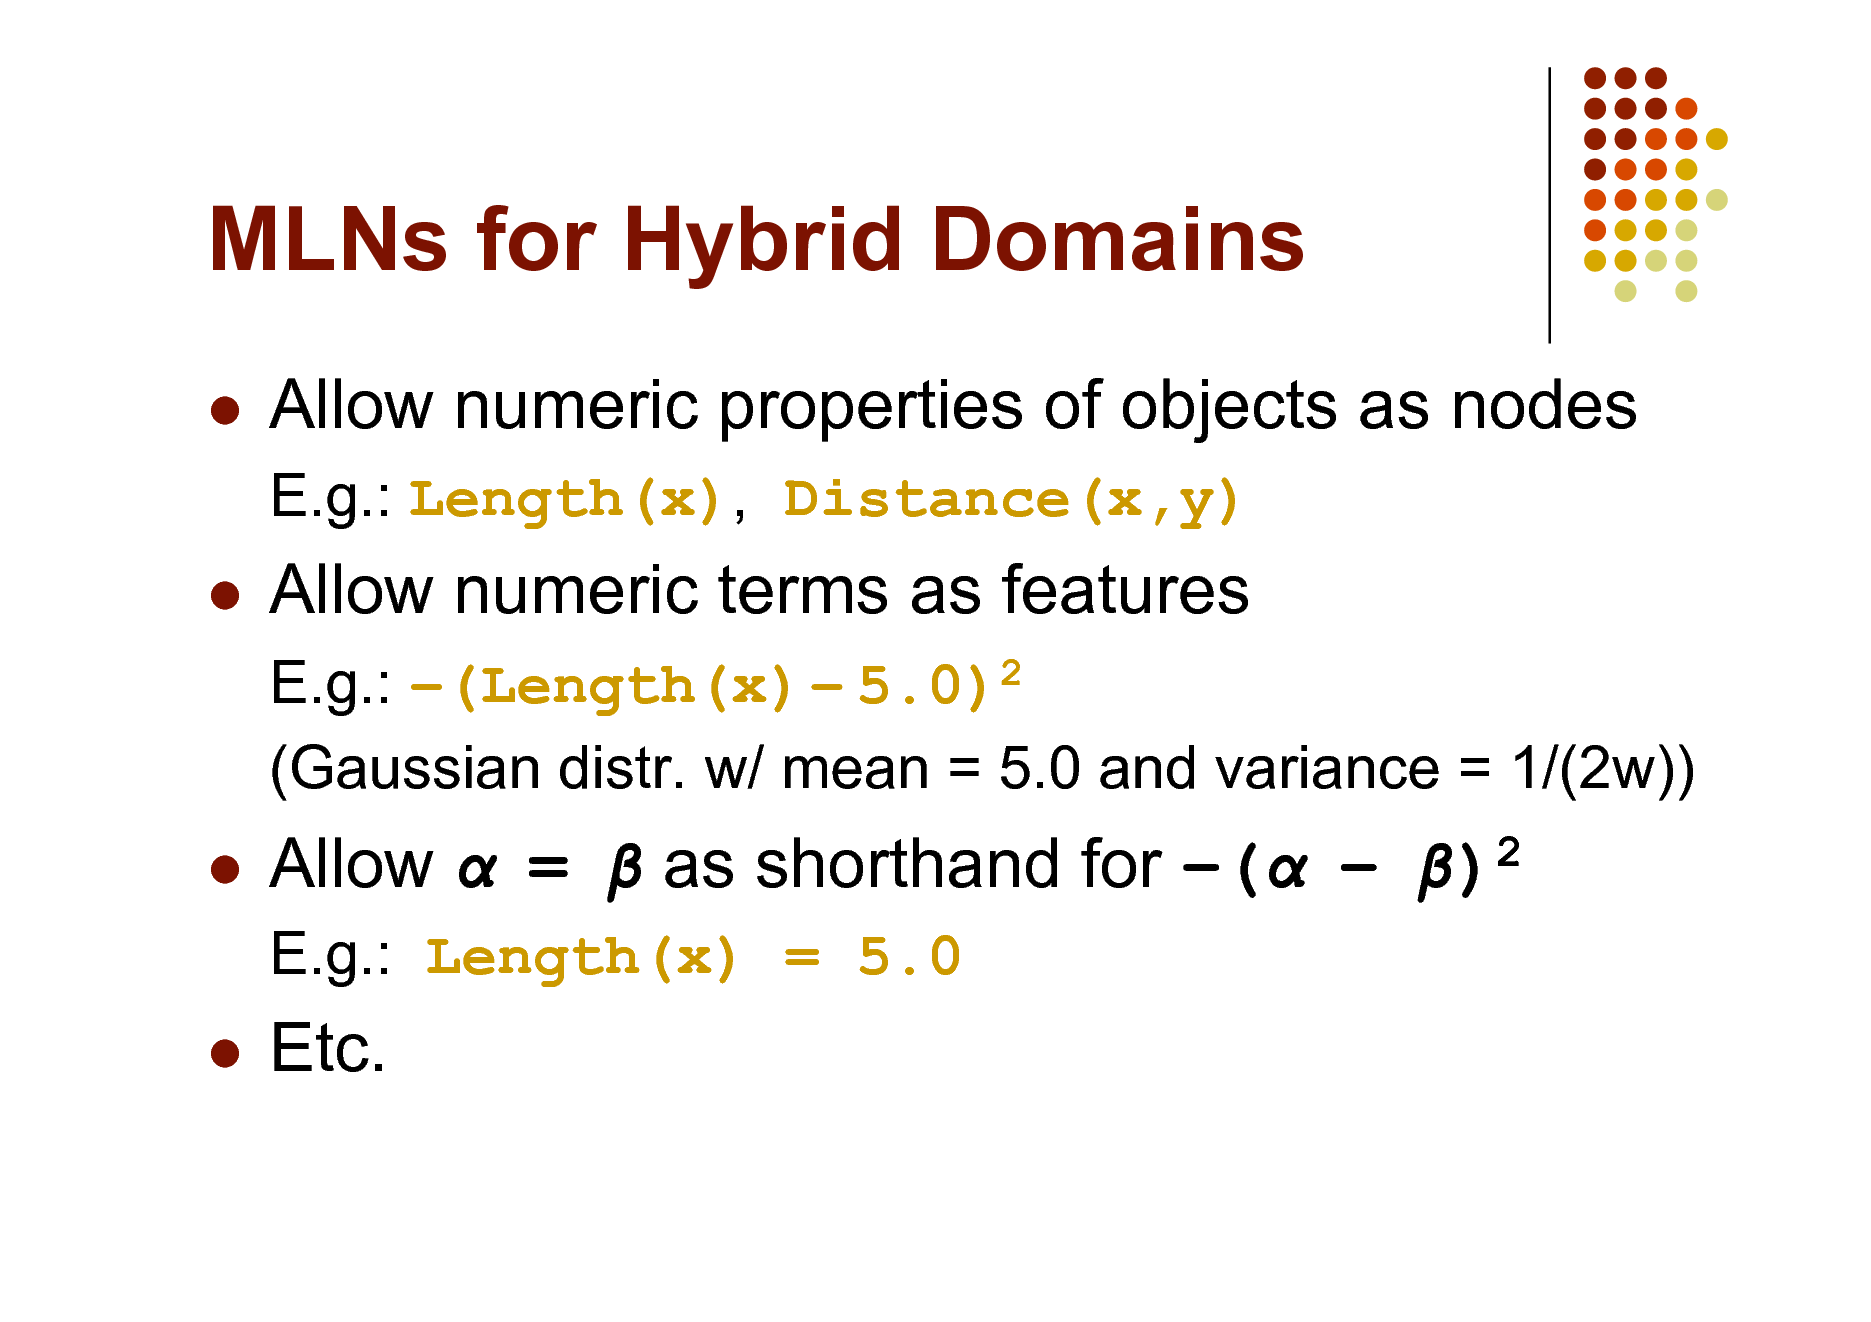 Slide: MLNs for Hybrid Domains   Allow numeric properties of objects as nodes E.g.: Length(x), Distance(x,y)    Allow numeric terms as features E.g.: (Length(x)  5.0)2 (Gaussian distr. w/ mean = 5.0 and variance = 1/(2w))    Allow  =  as shorthand for (  )2 E.g.: Length(x) = 5.0    Etc.